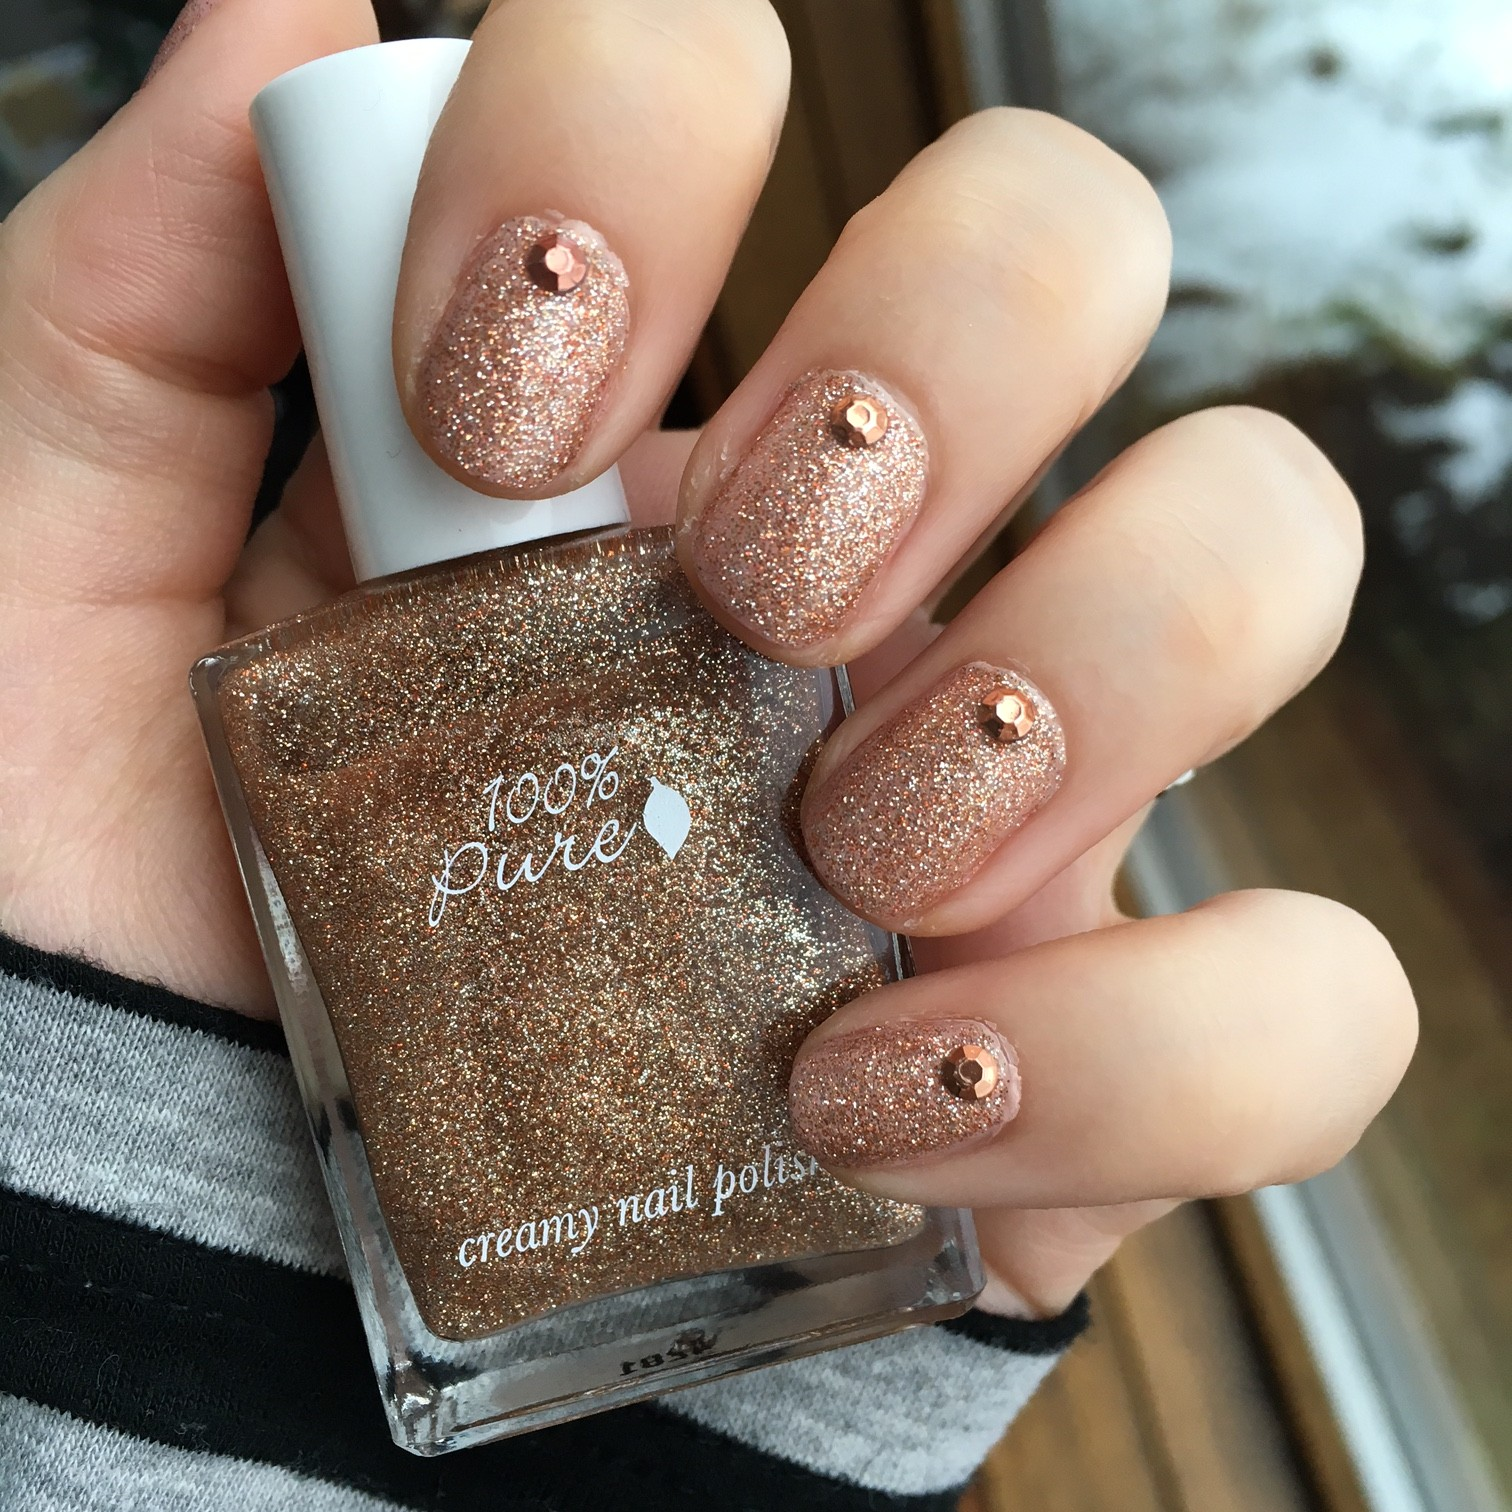 Nails Of The Day 100 Pure S Sugar Vegan Beauty Review Vegan And Cruelty Free Beauty